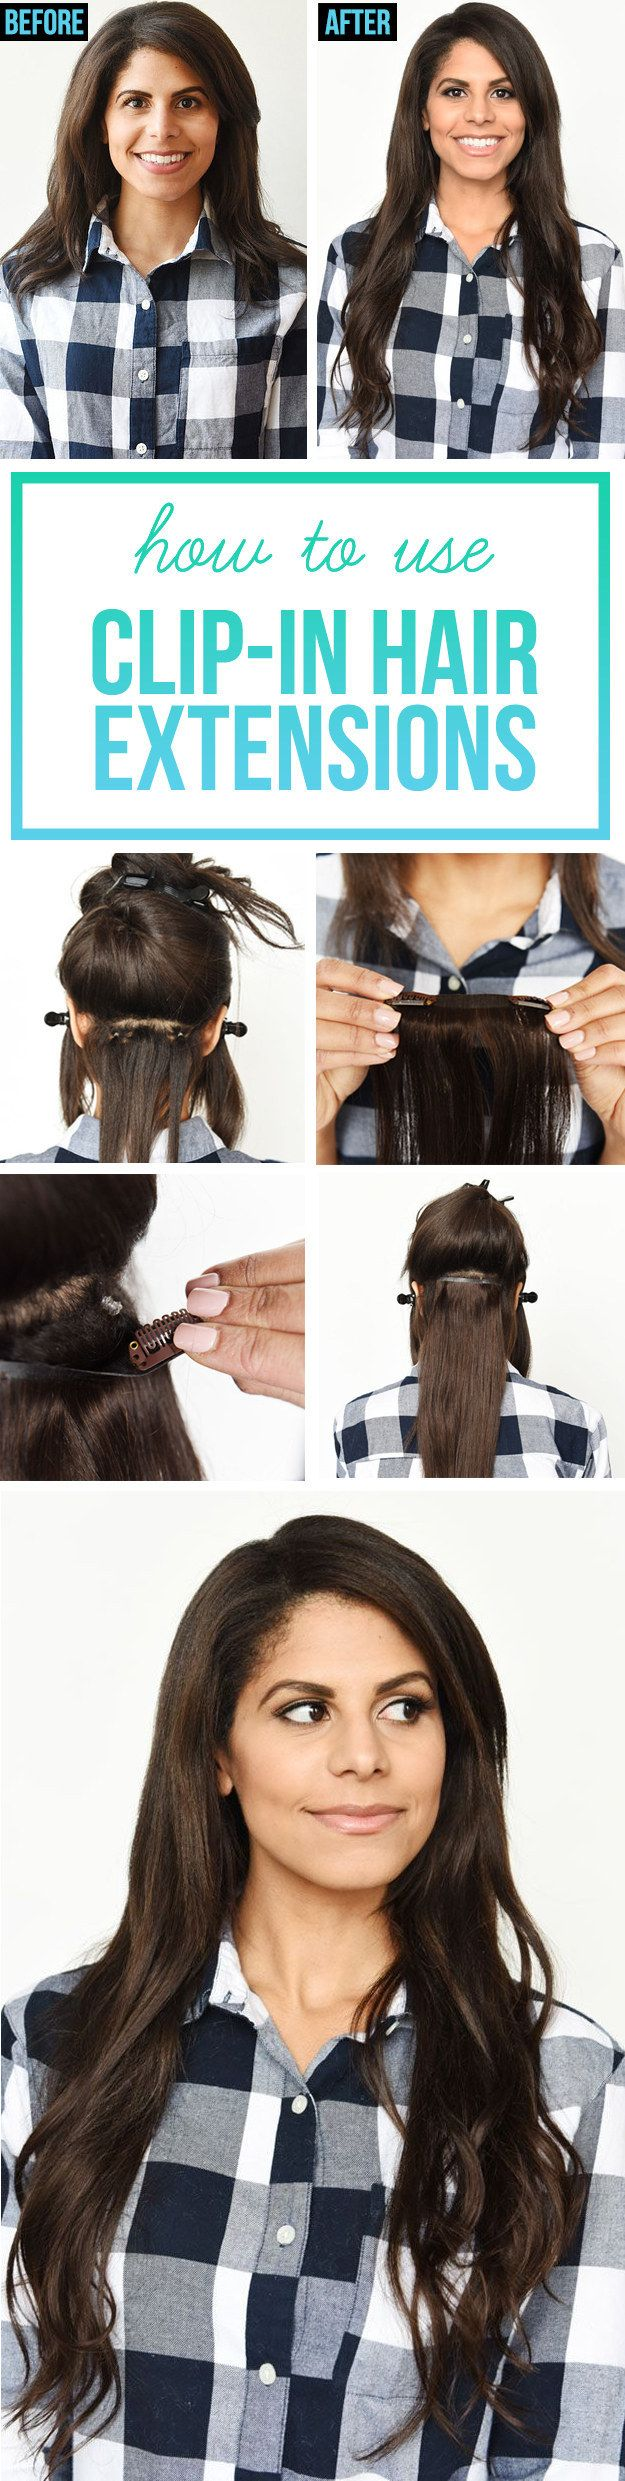 Best instructional on clipping in hair extensions. Love the small elastic method, works so much better than just teasing the root. Nice job ...buzzfeed? This Guide Will Show You Exactly How To Use Clip-In Hair Extensions